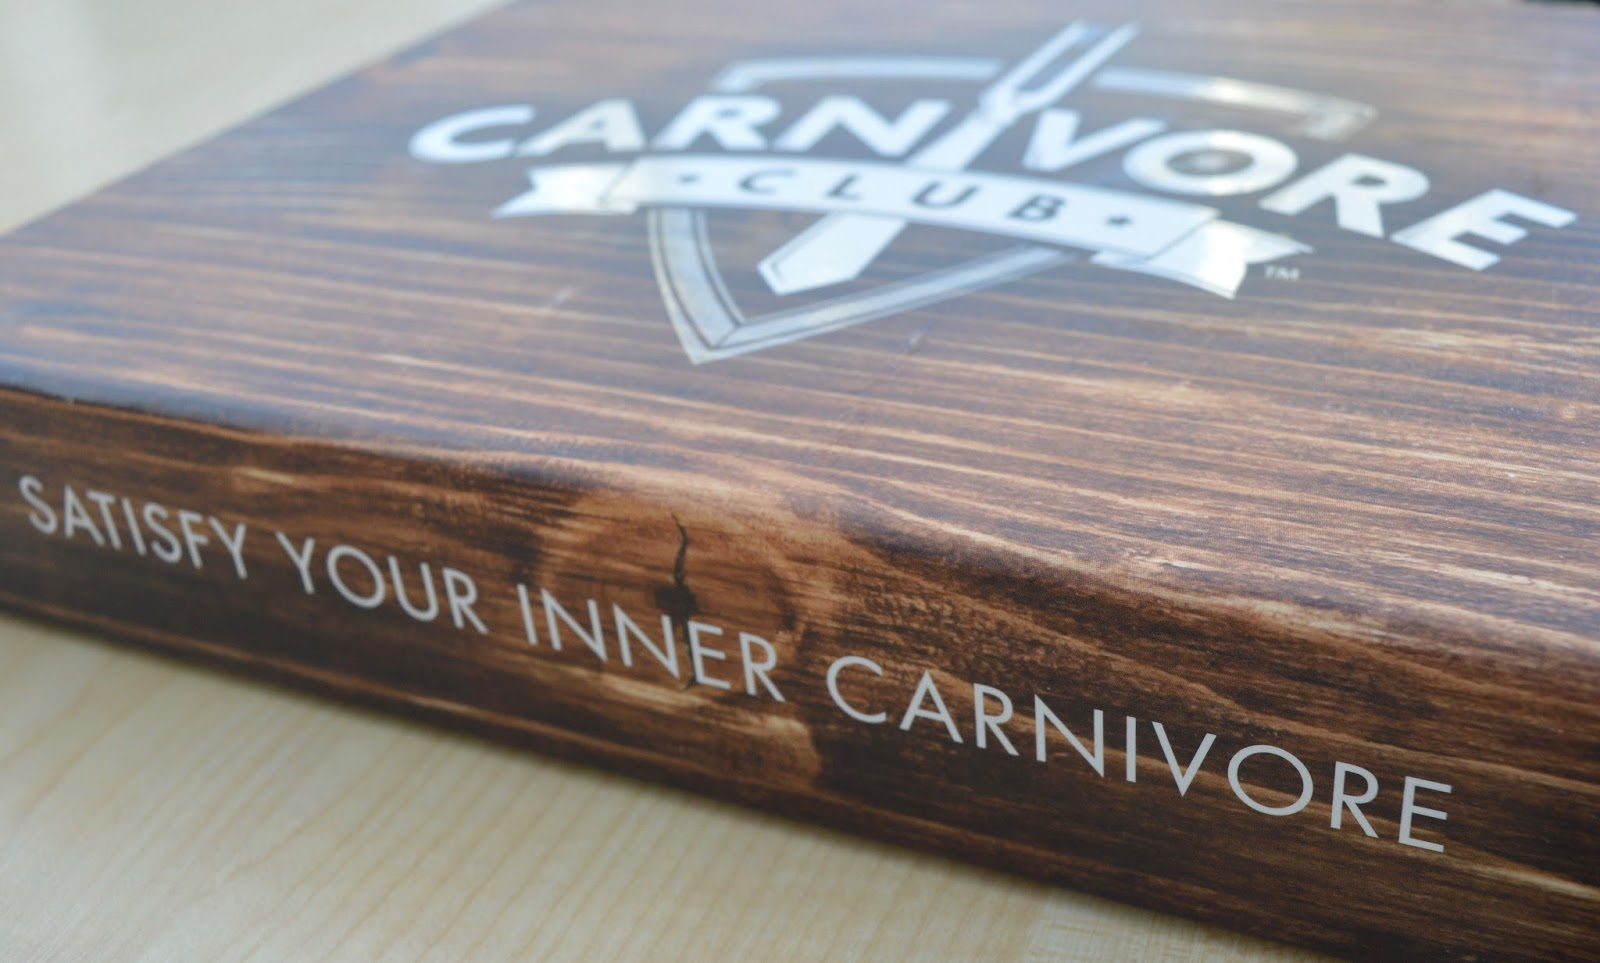 Carnivore Club - The Ultimate Meat Club Charcuterie Subscription Box - A review